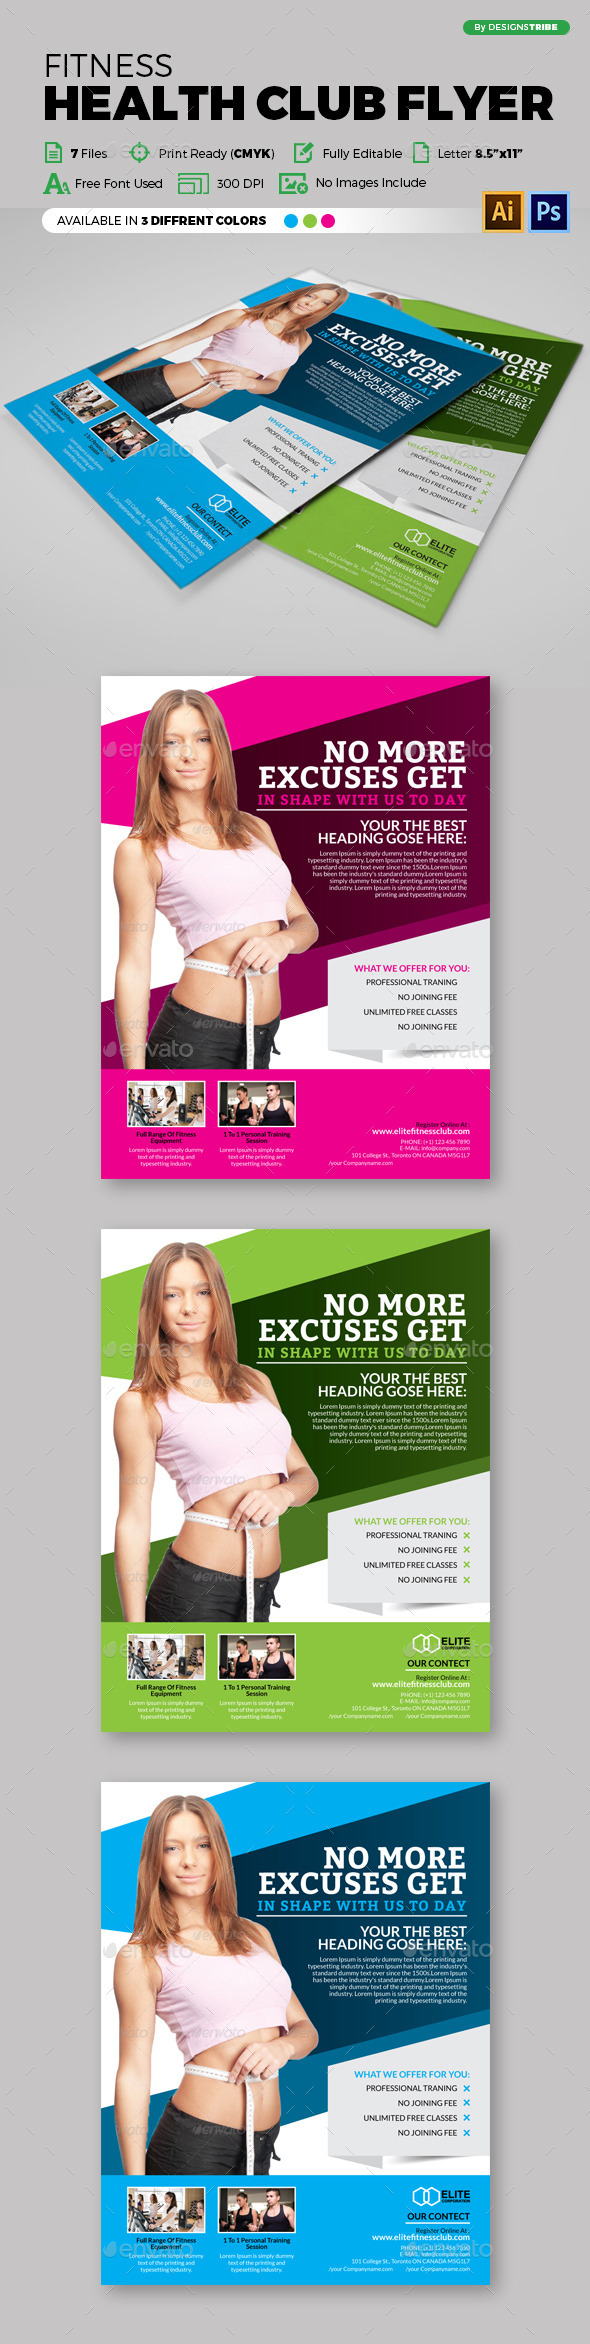 Fitness Health Club Flyer 88